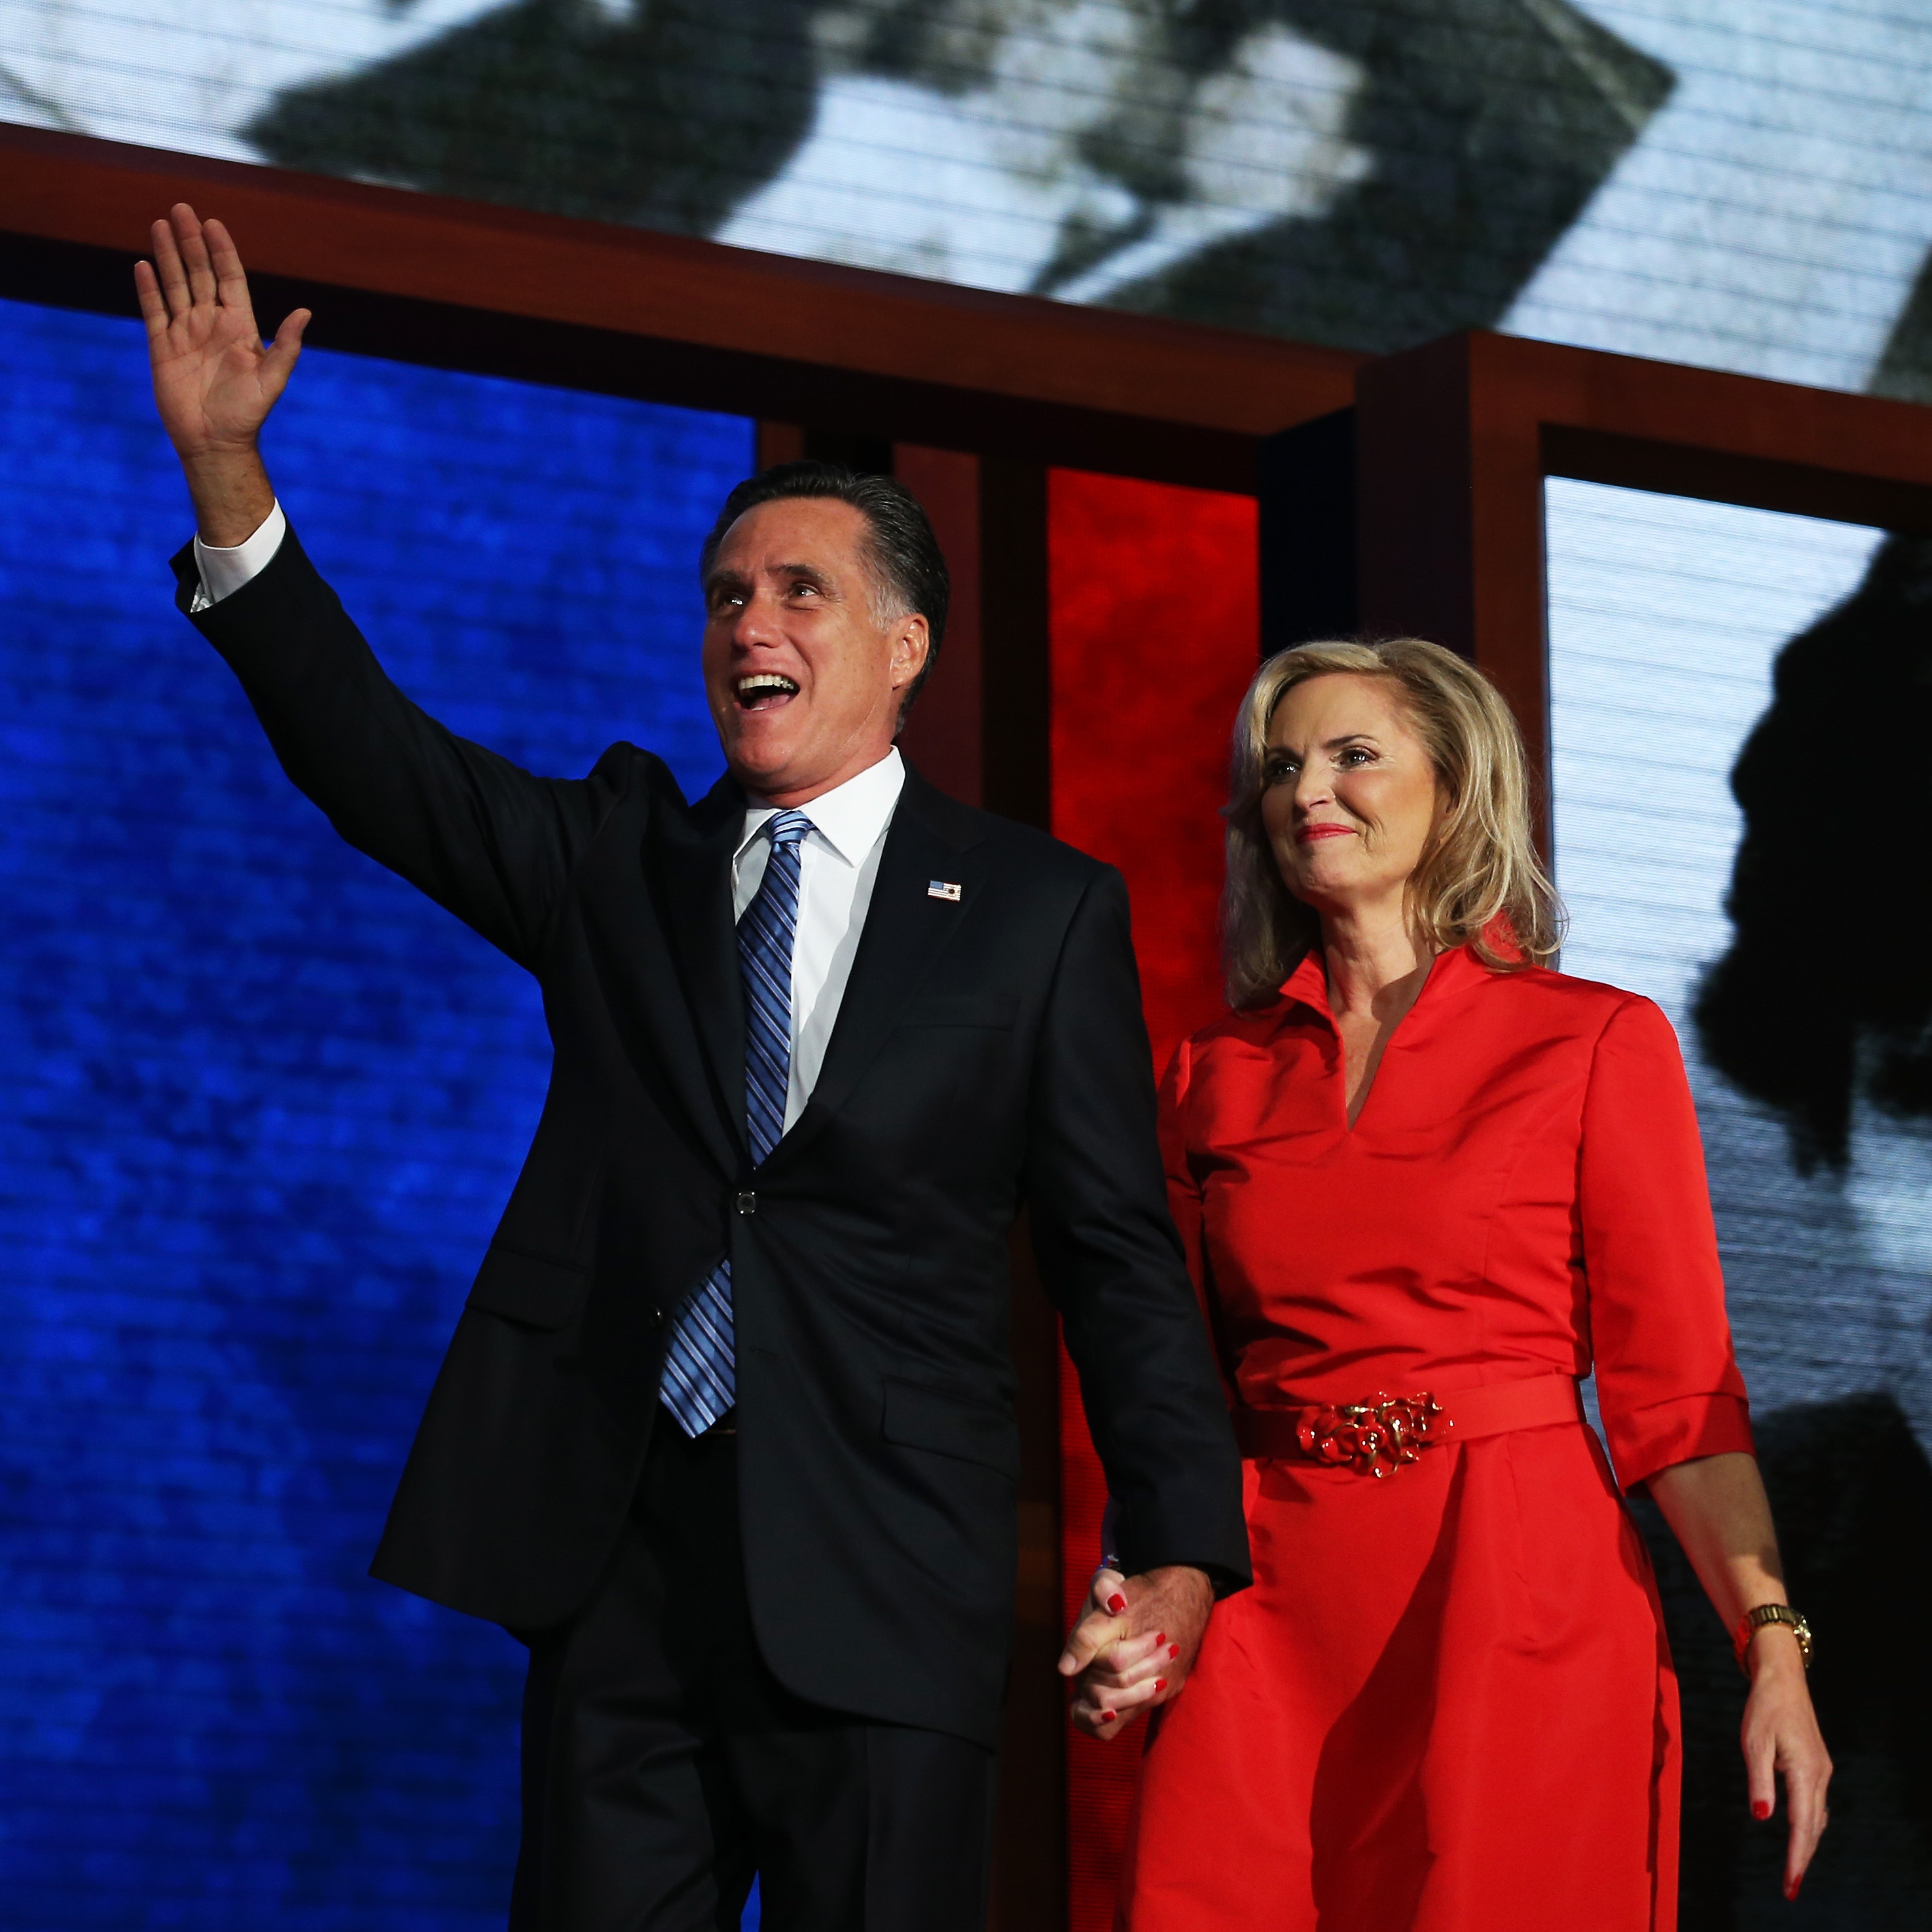 Mitt Romney and his wife Ann Romney on the stage of the Republican National Convention in Tampa after her address to the delegates. He officially became the party's presidential nominee Tuesday.